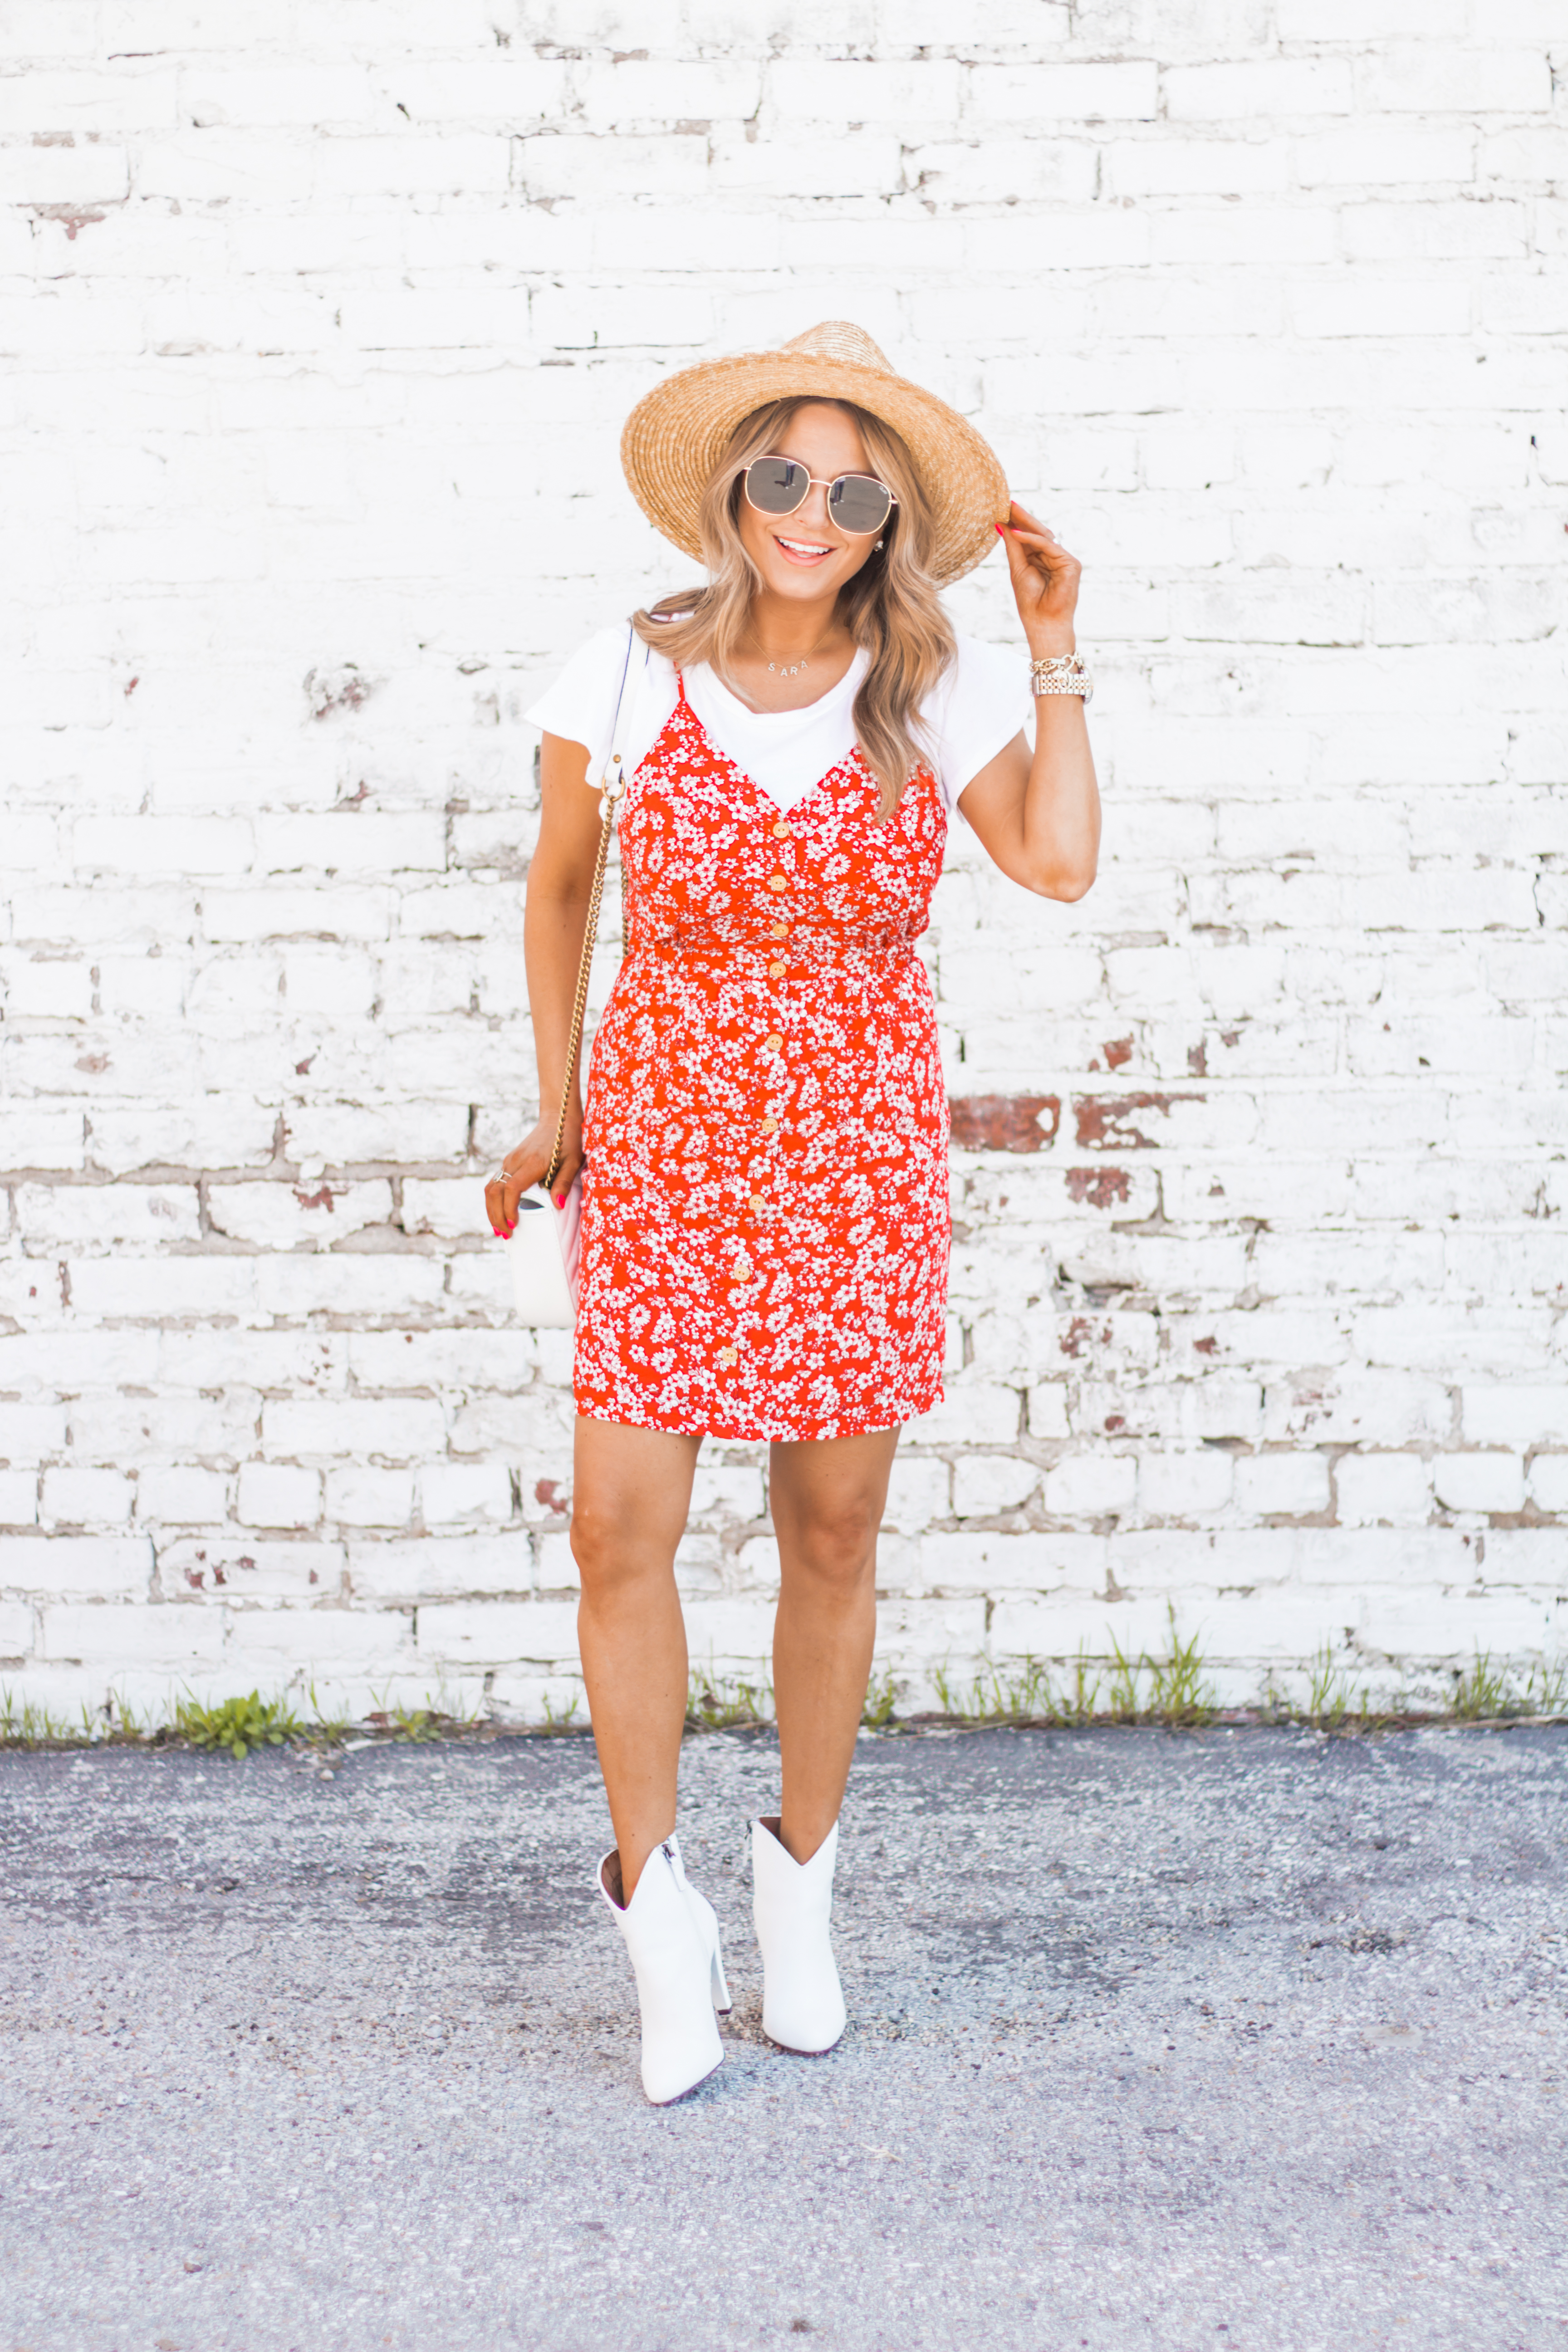 red-sundress-spring-summer-dress-floral dress-women's fashion- spring fashion-summer fashion-brixton hat-white booties-Omaha blogger-sabby style-6